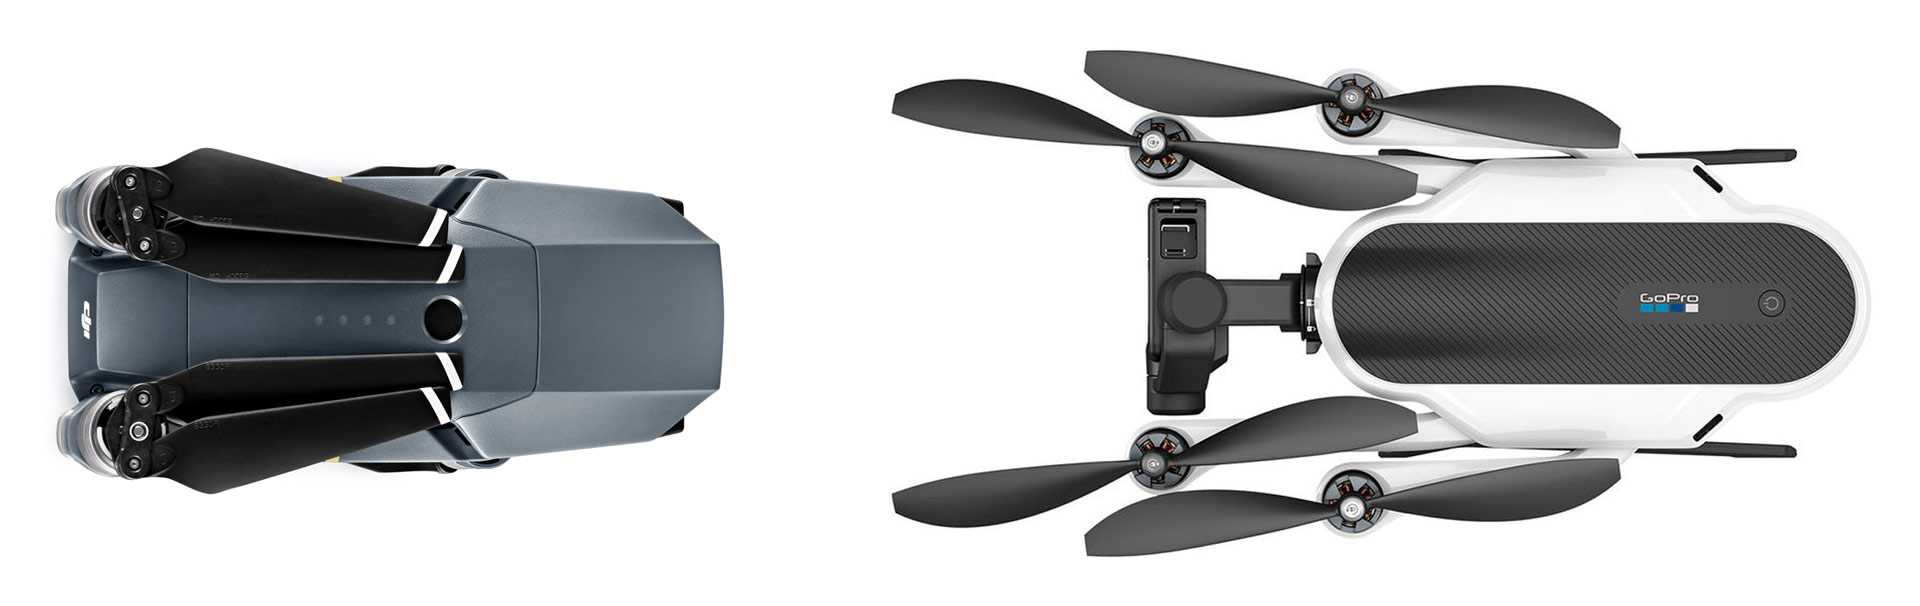 DJI Mavic Vs GoPro Karma Comparison In Folded Away State The Size Differences Are Not